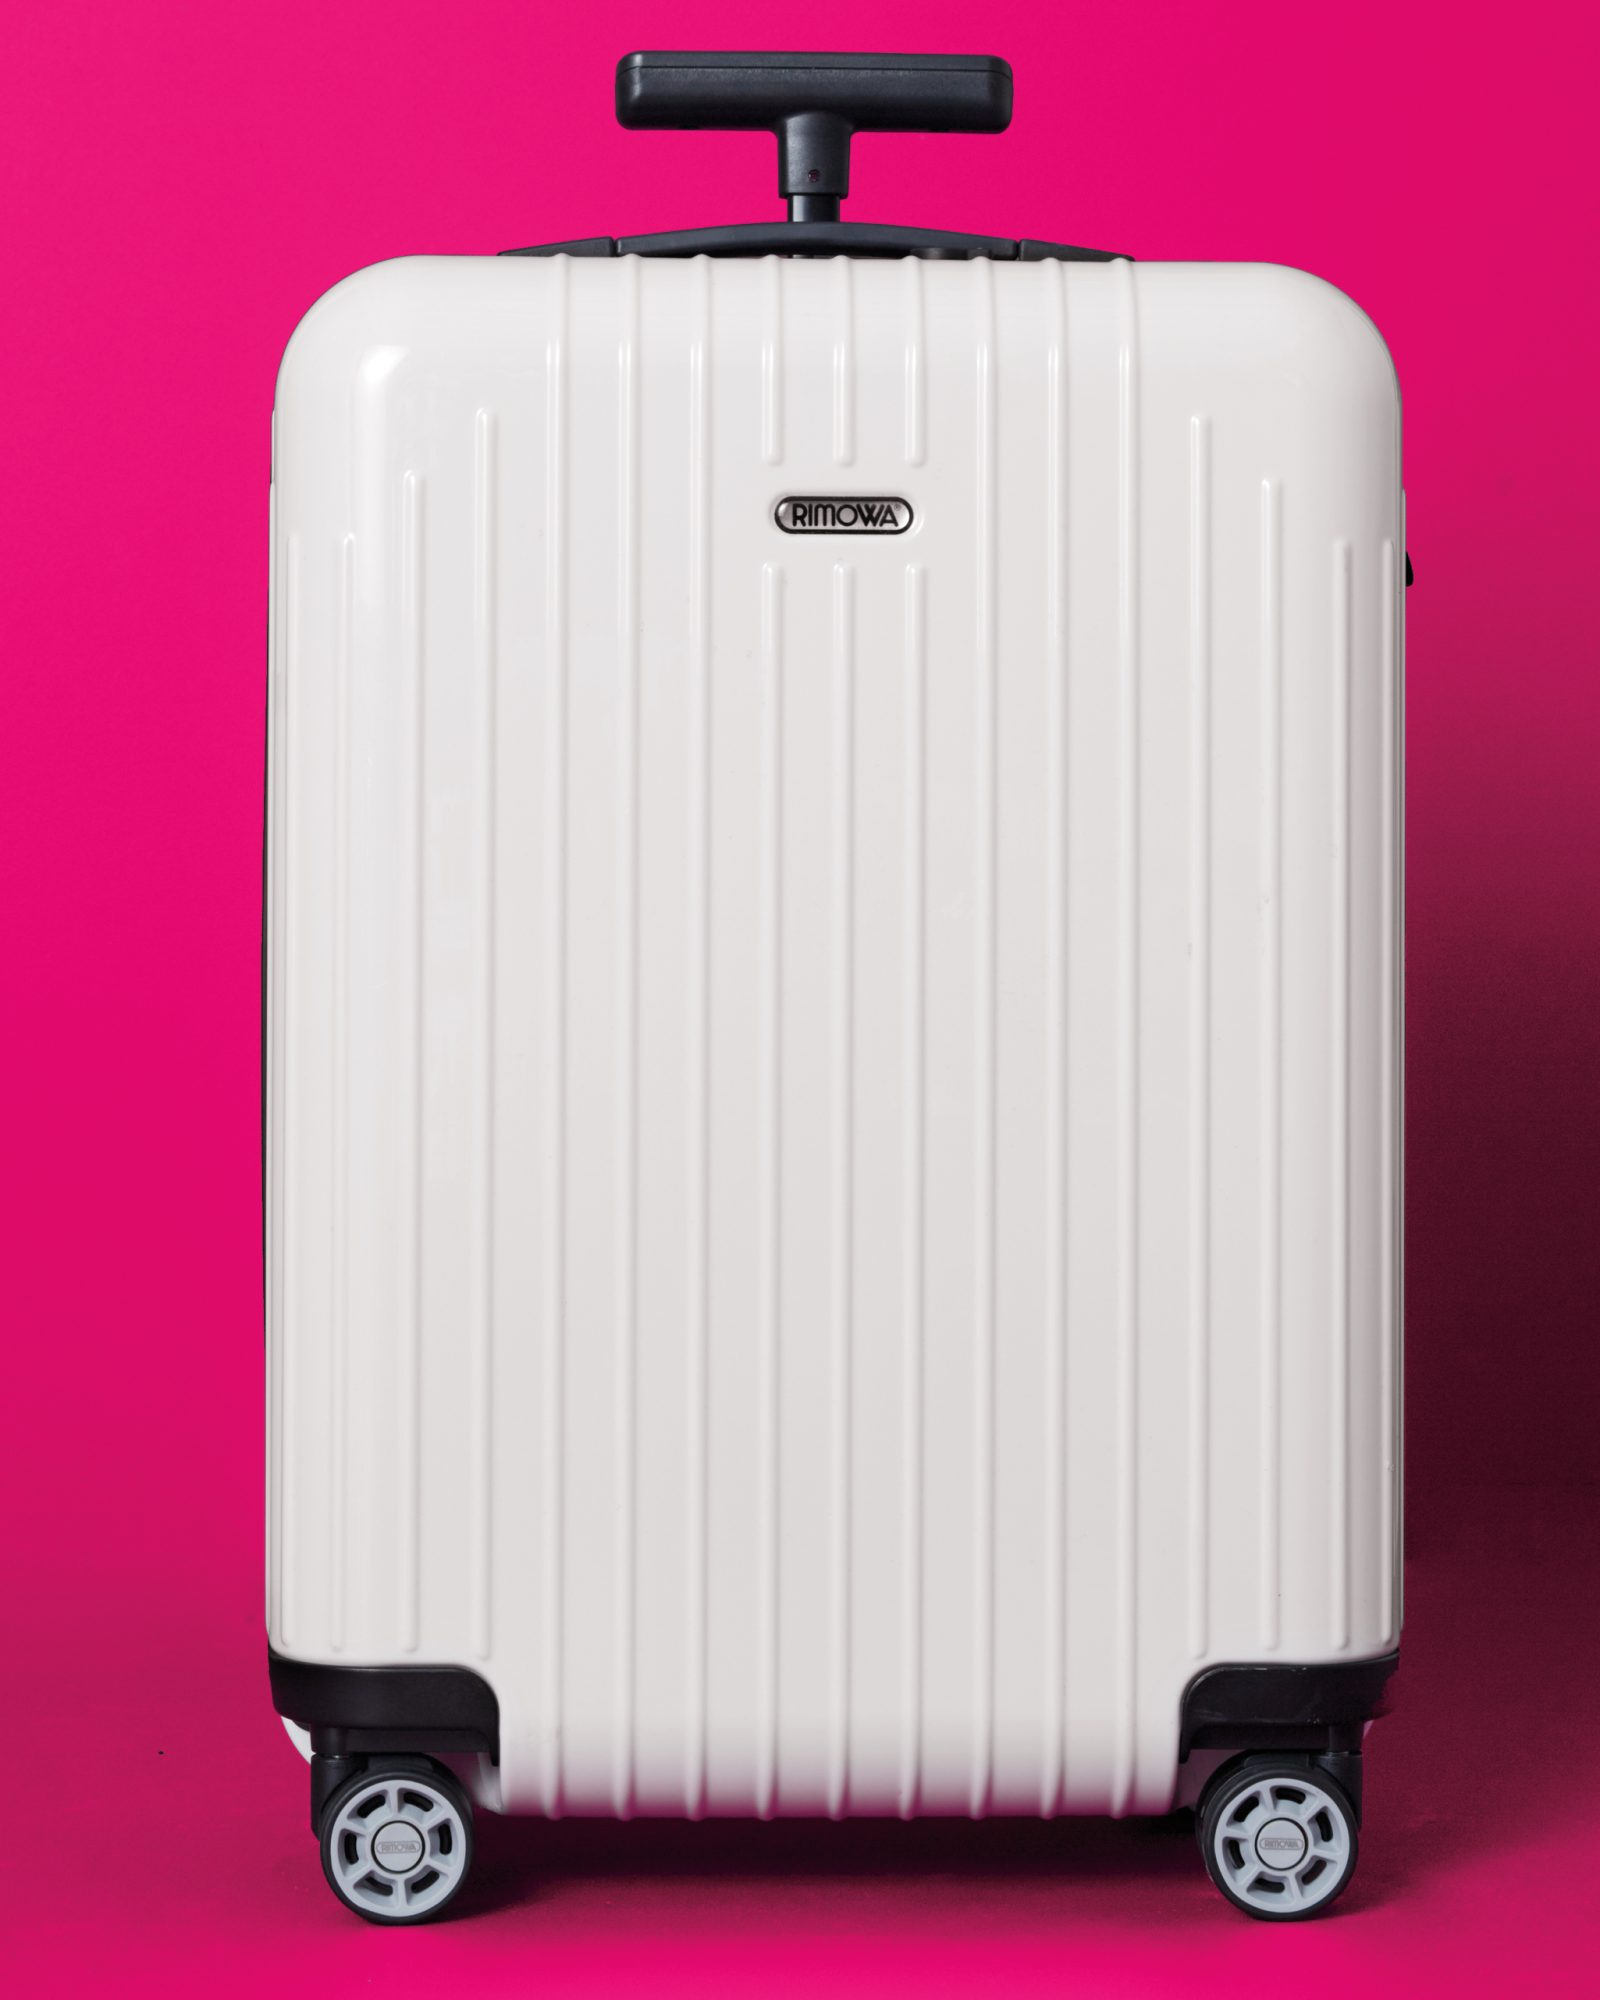 rimowa-luggage-228-d112473.jpg